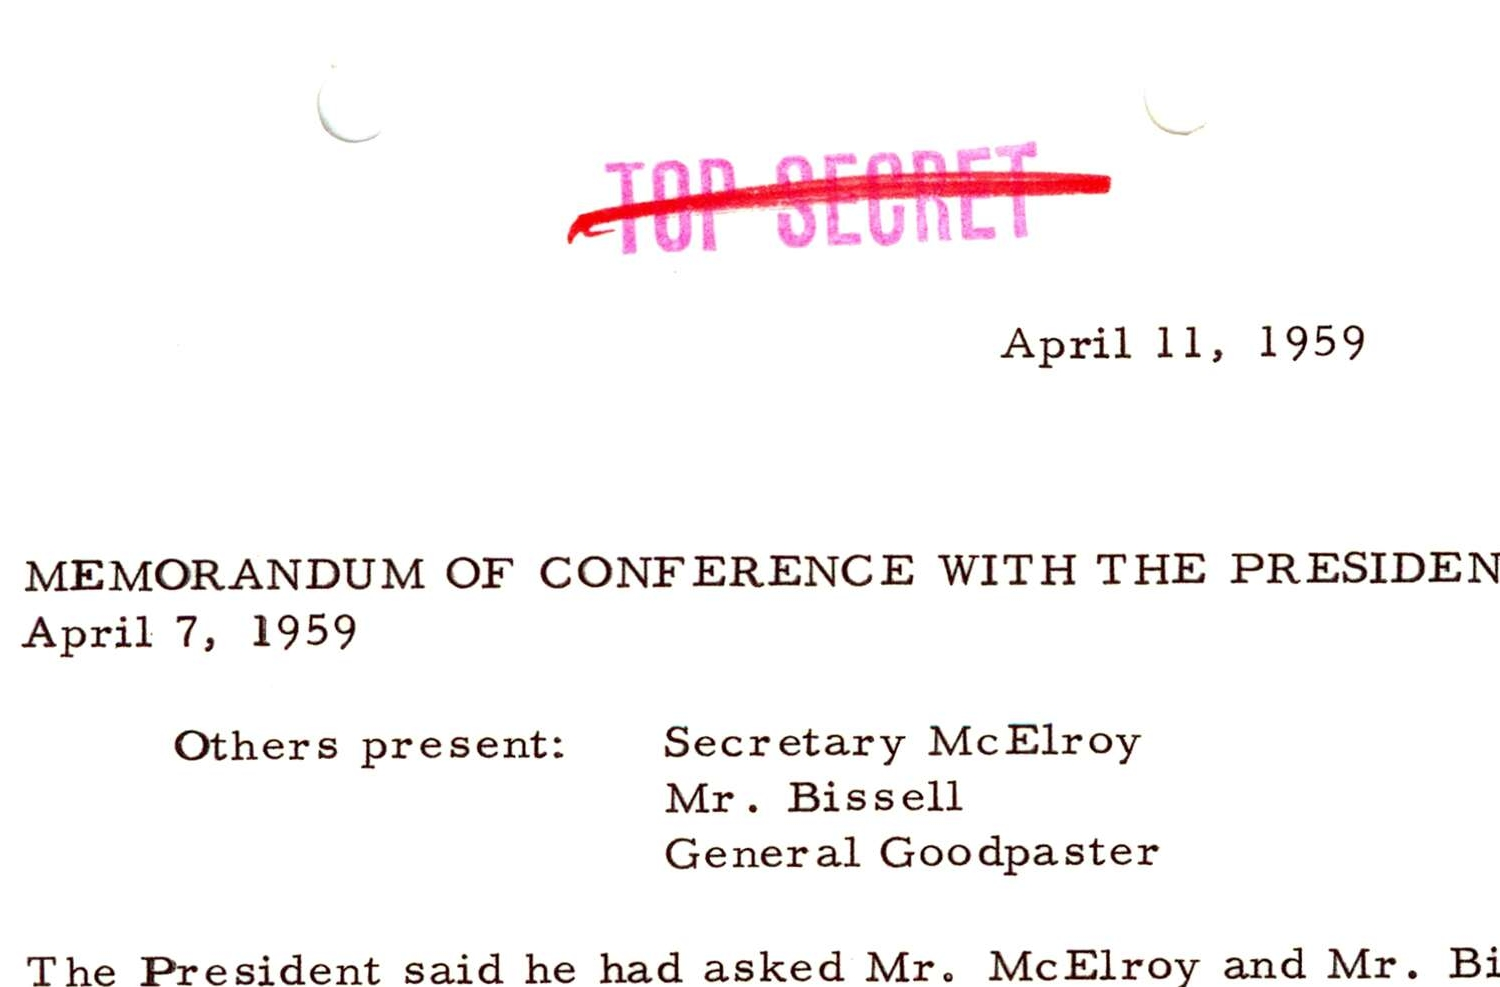 Memorandum of Conference with President  Eisenhower